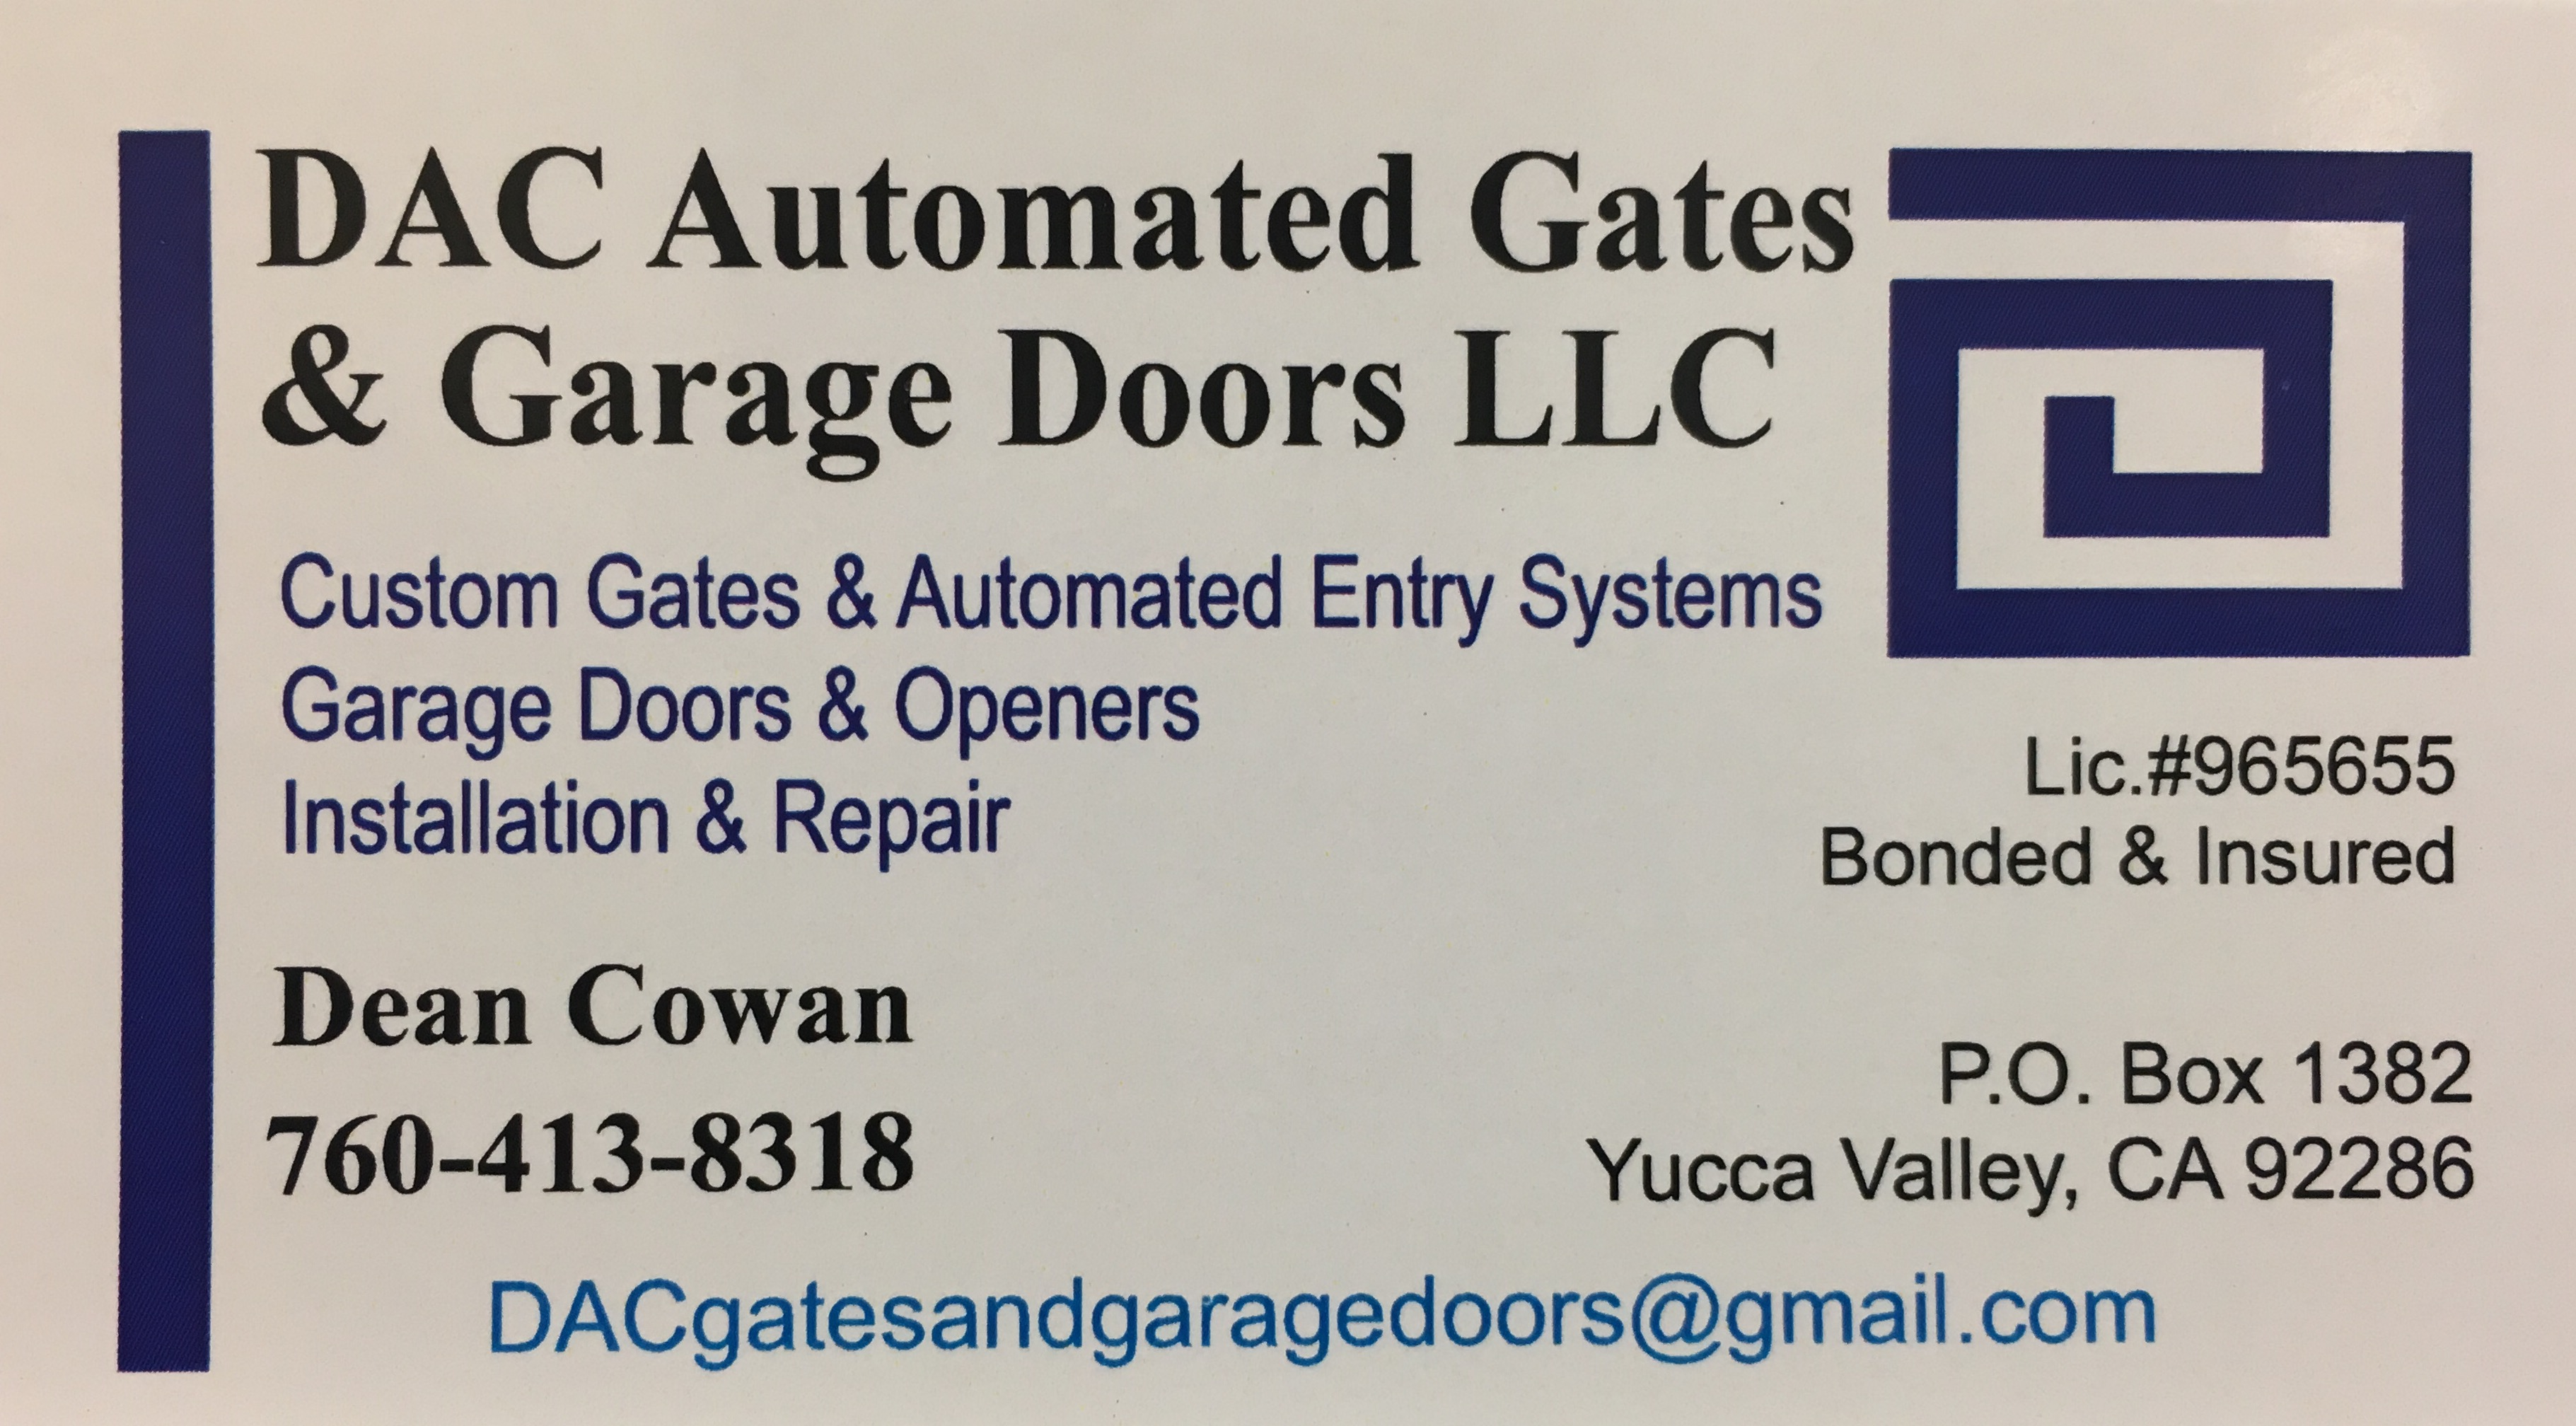 DAC Automated Gates & Garage Doors